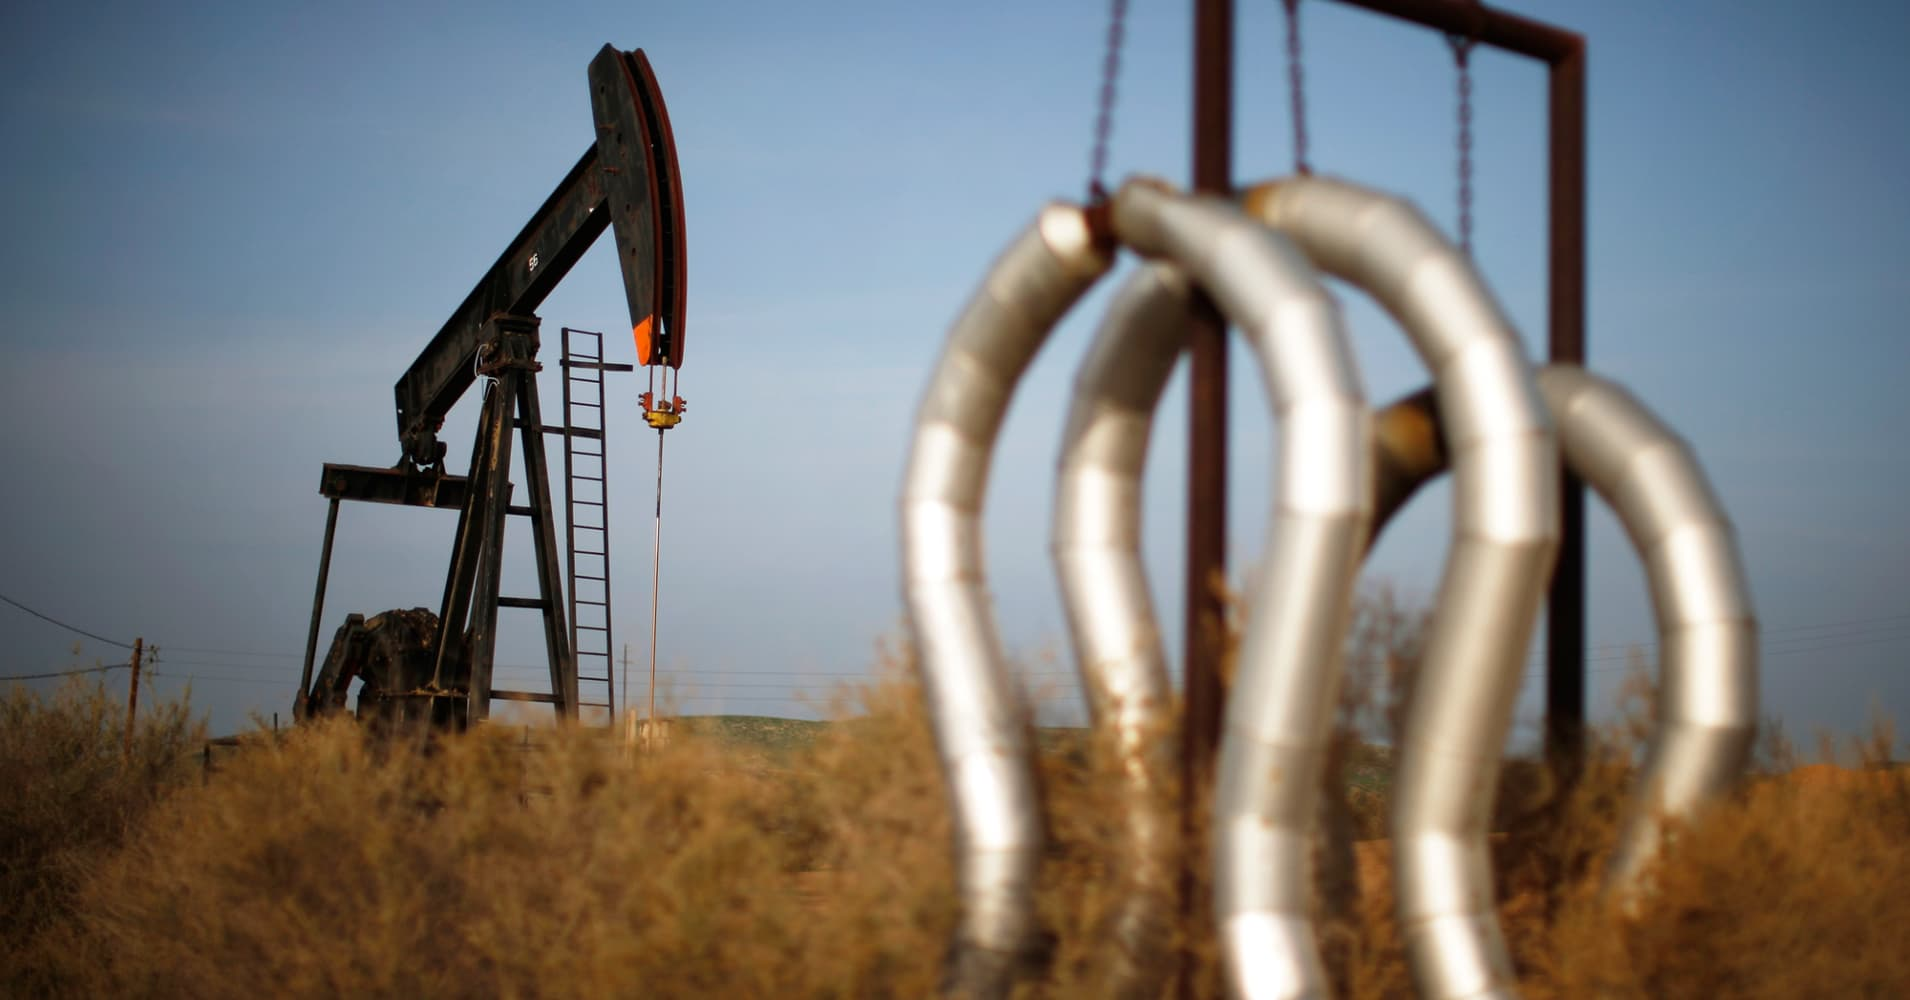 Oil dips away from 2014 highs on rising US rig count, but analysts say market supported